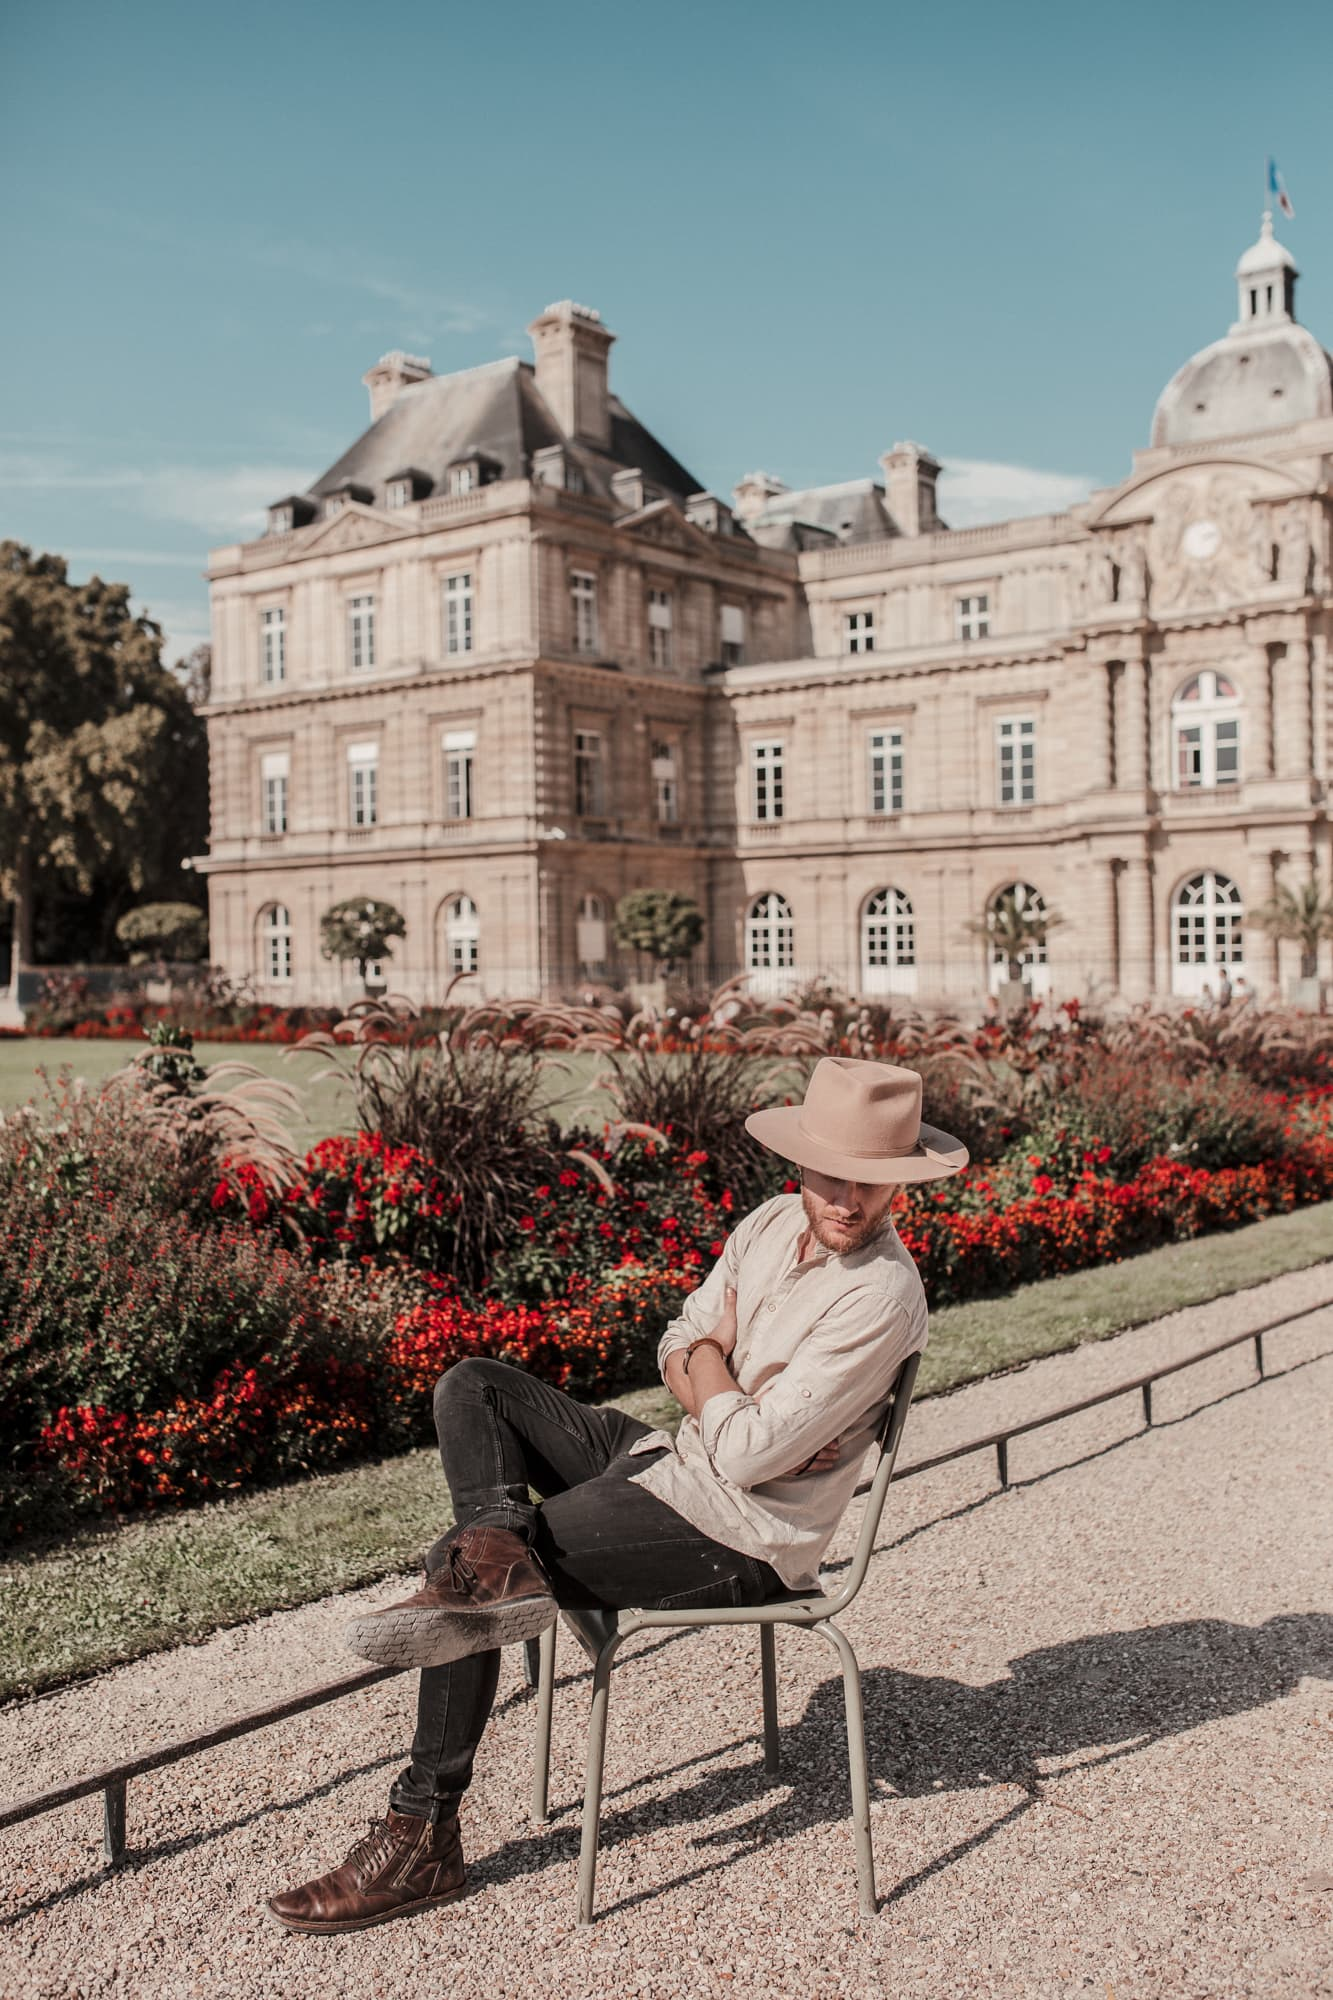 Nextdoornomad men's style in Paris